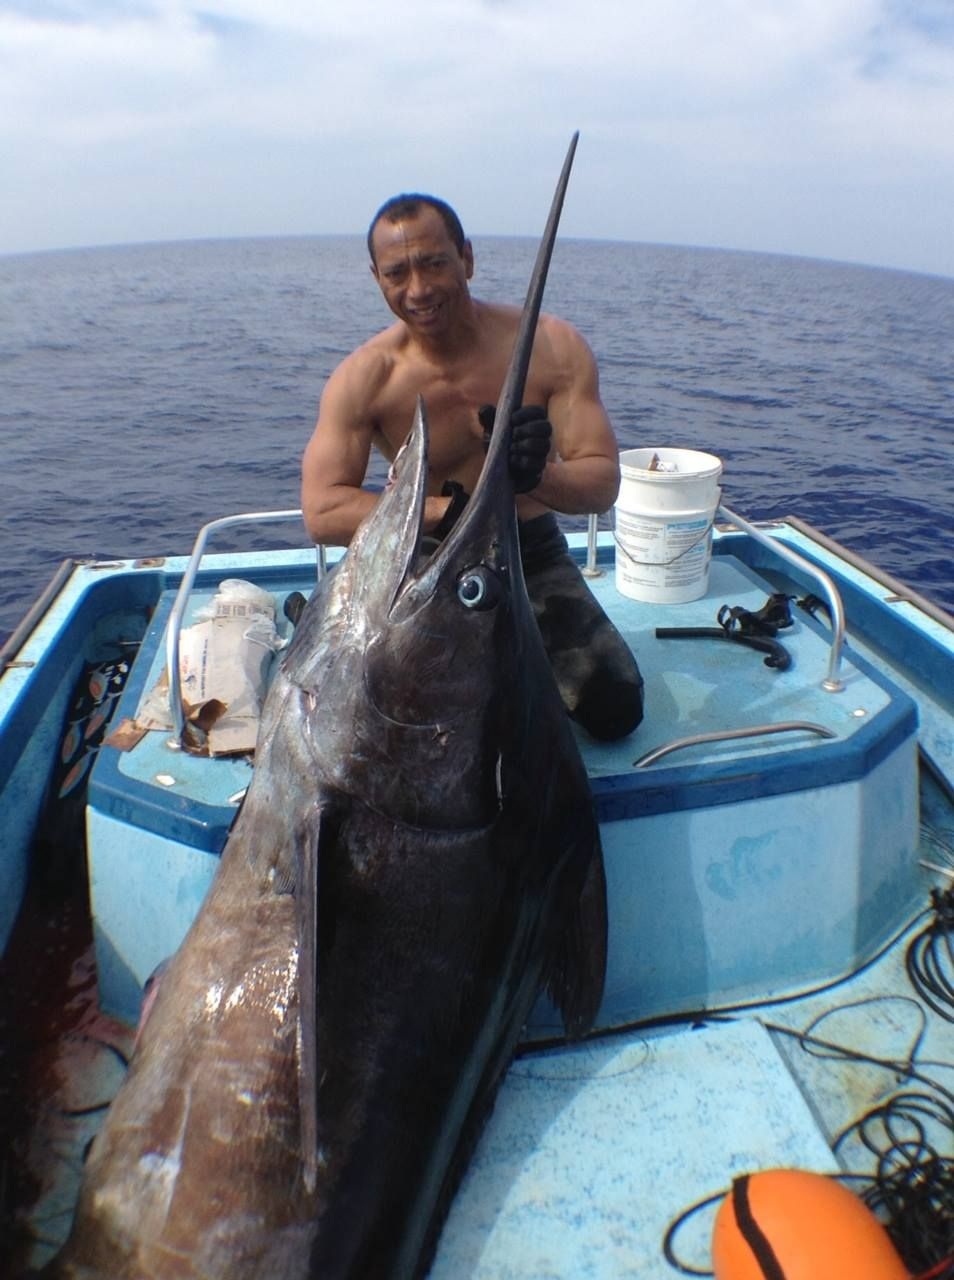 This May Be The Biggest Fish Ever Caught Spear Fishing In The State Wendell Ko Was The Diver Who Snagged The 400 Pound Marlin Off The Coast Big Fish Fish Freshwater Fish